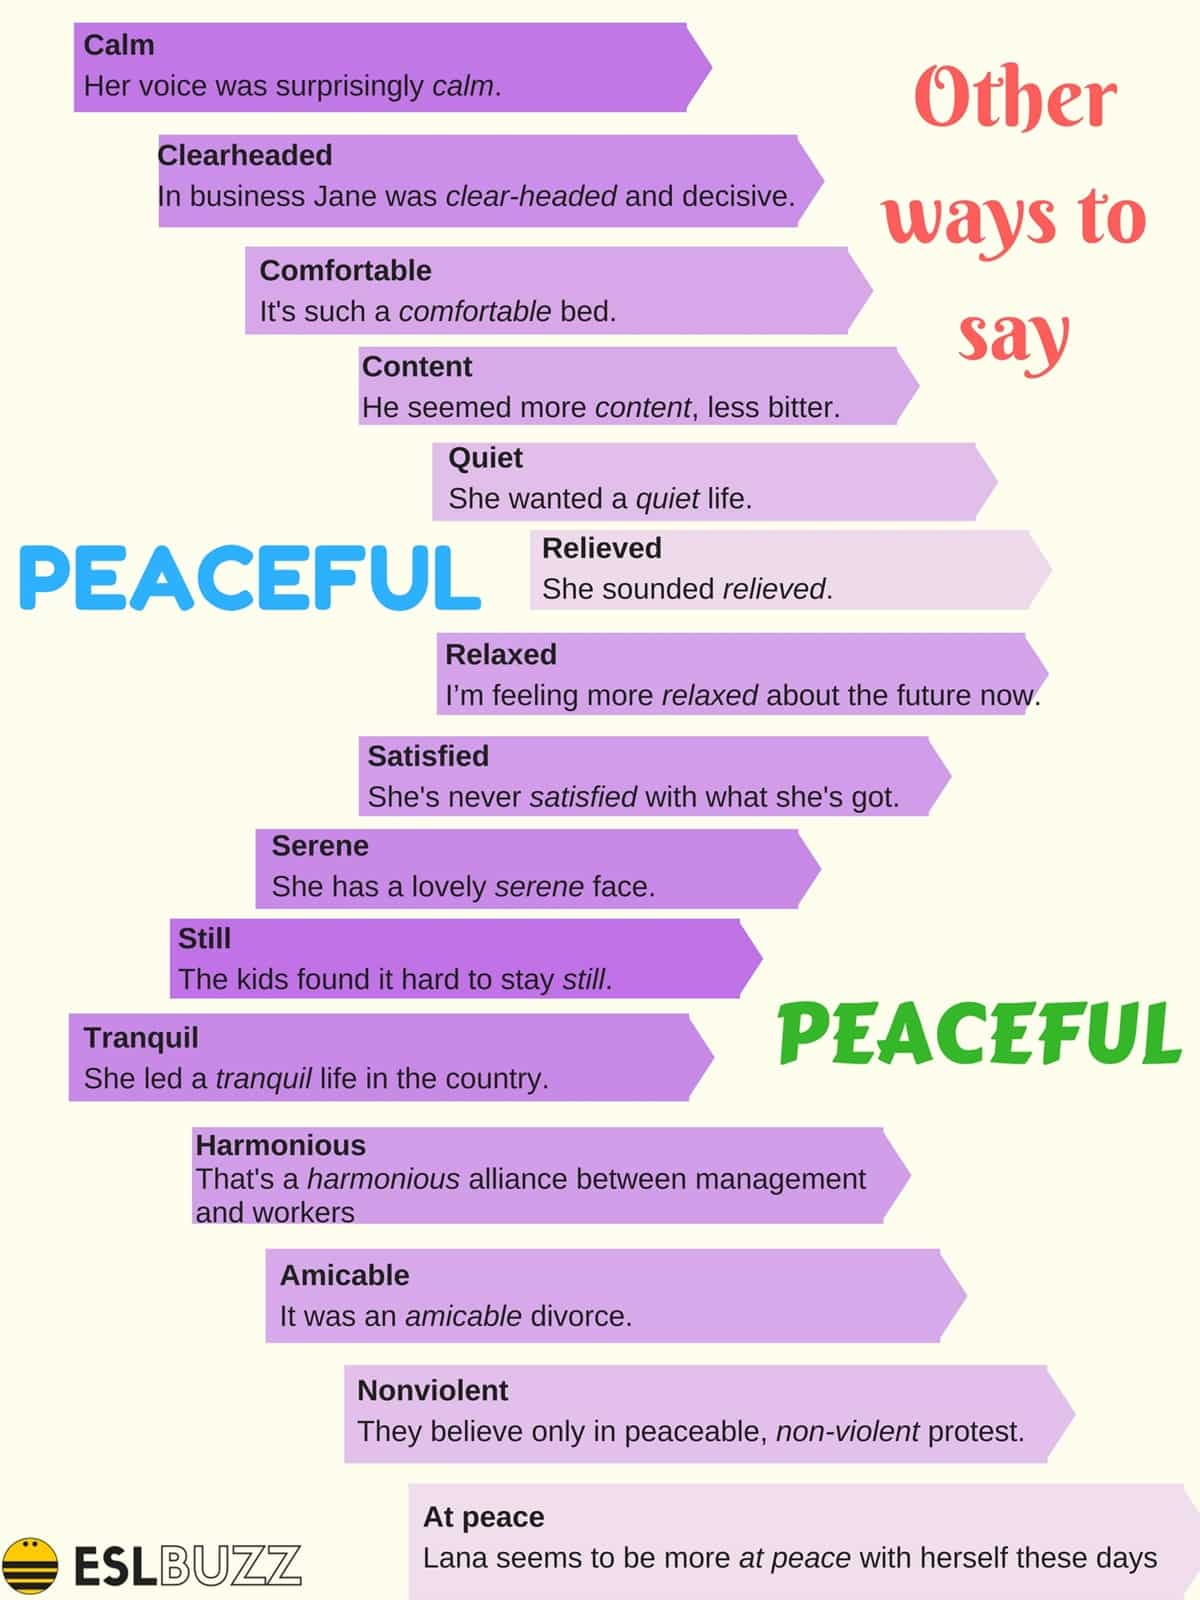 Other Ways to Say PEACEFUL